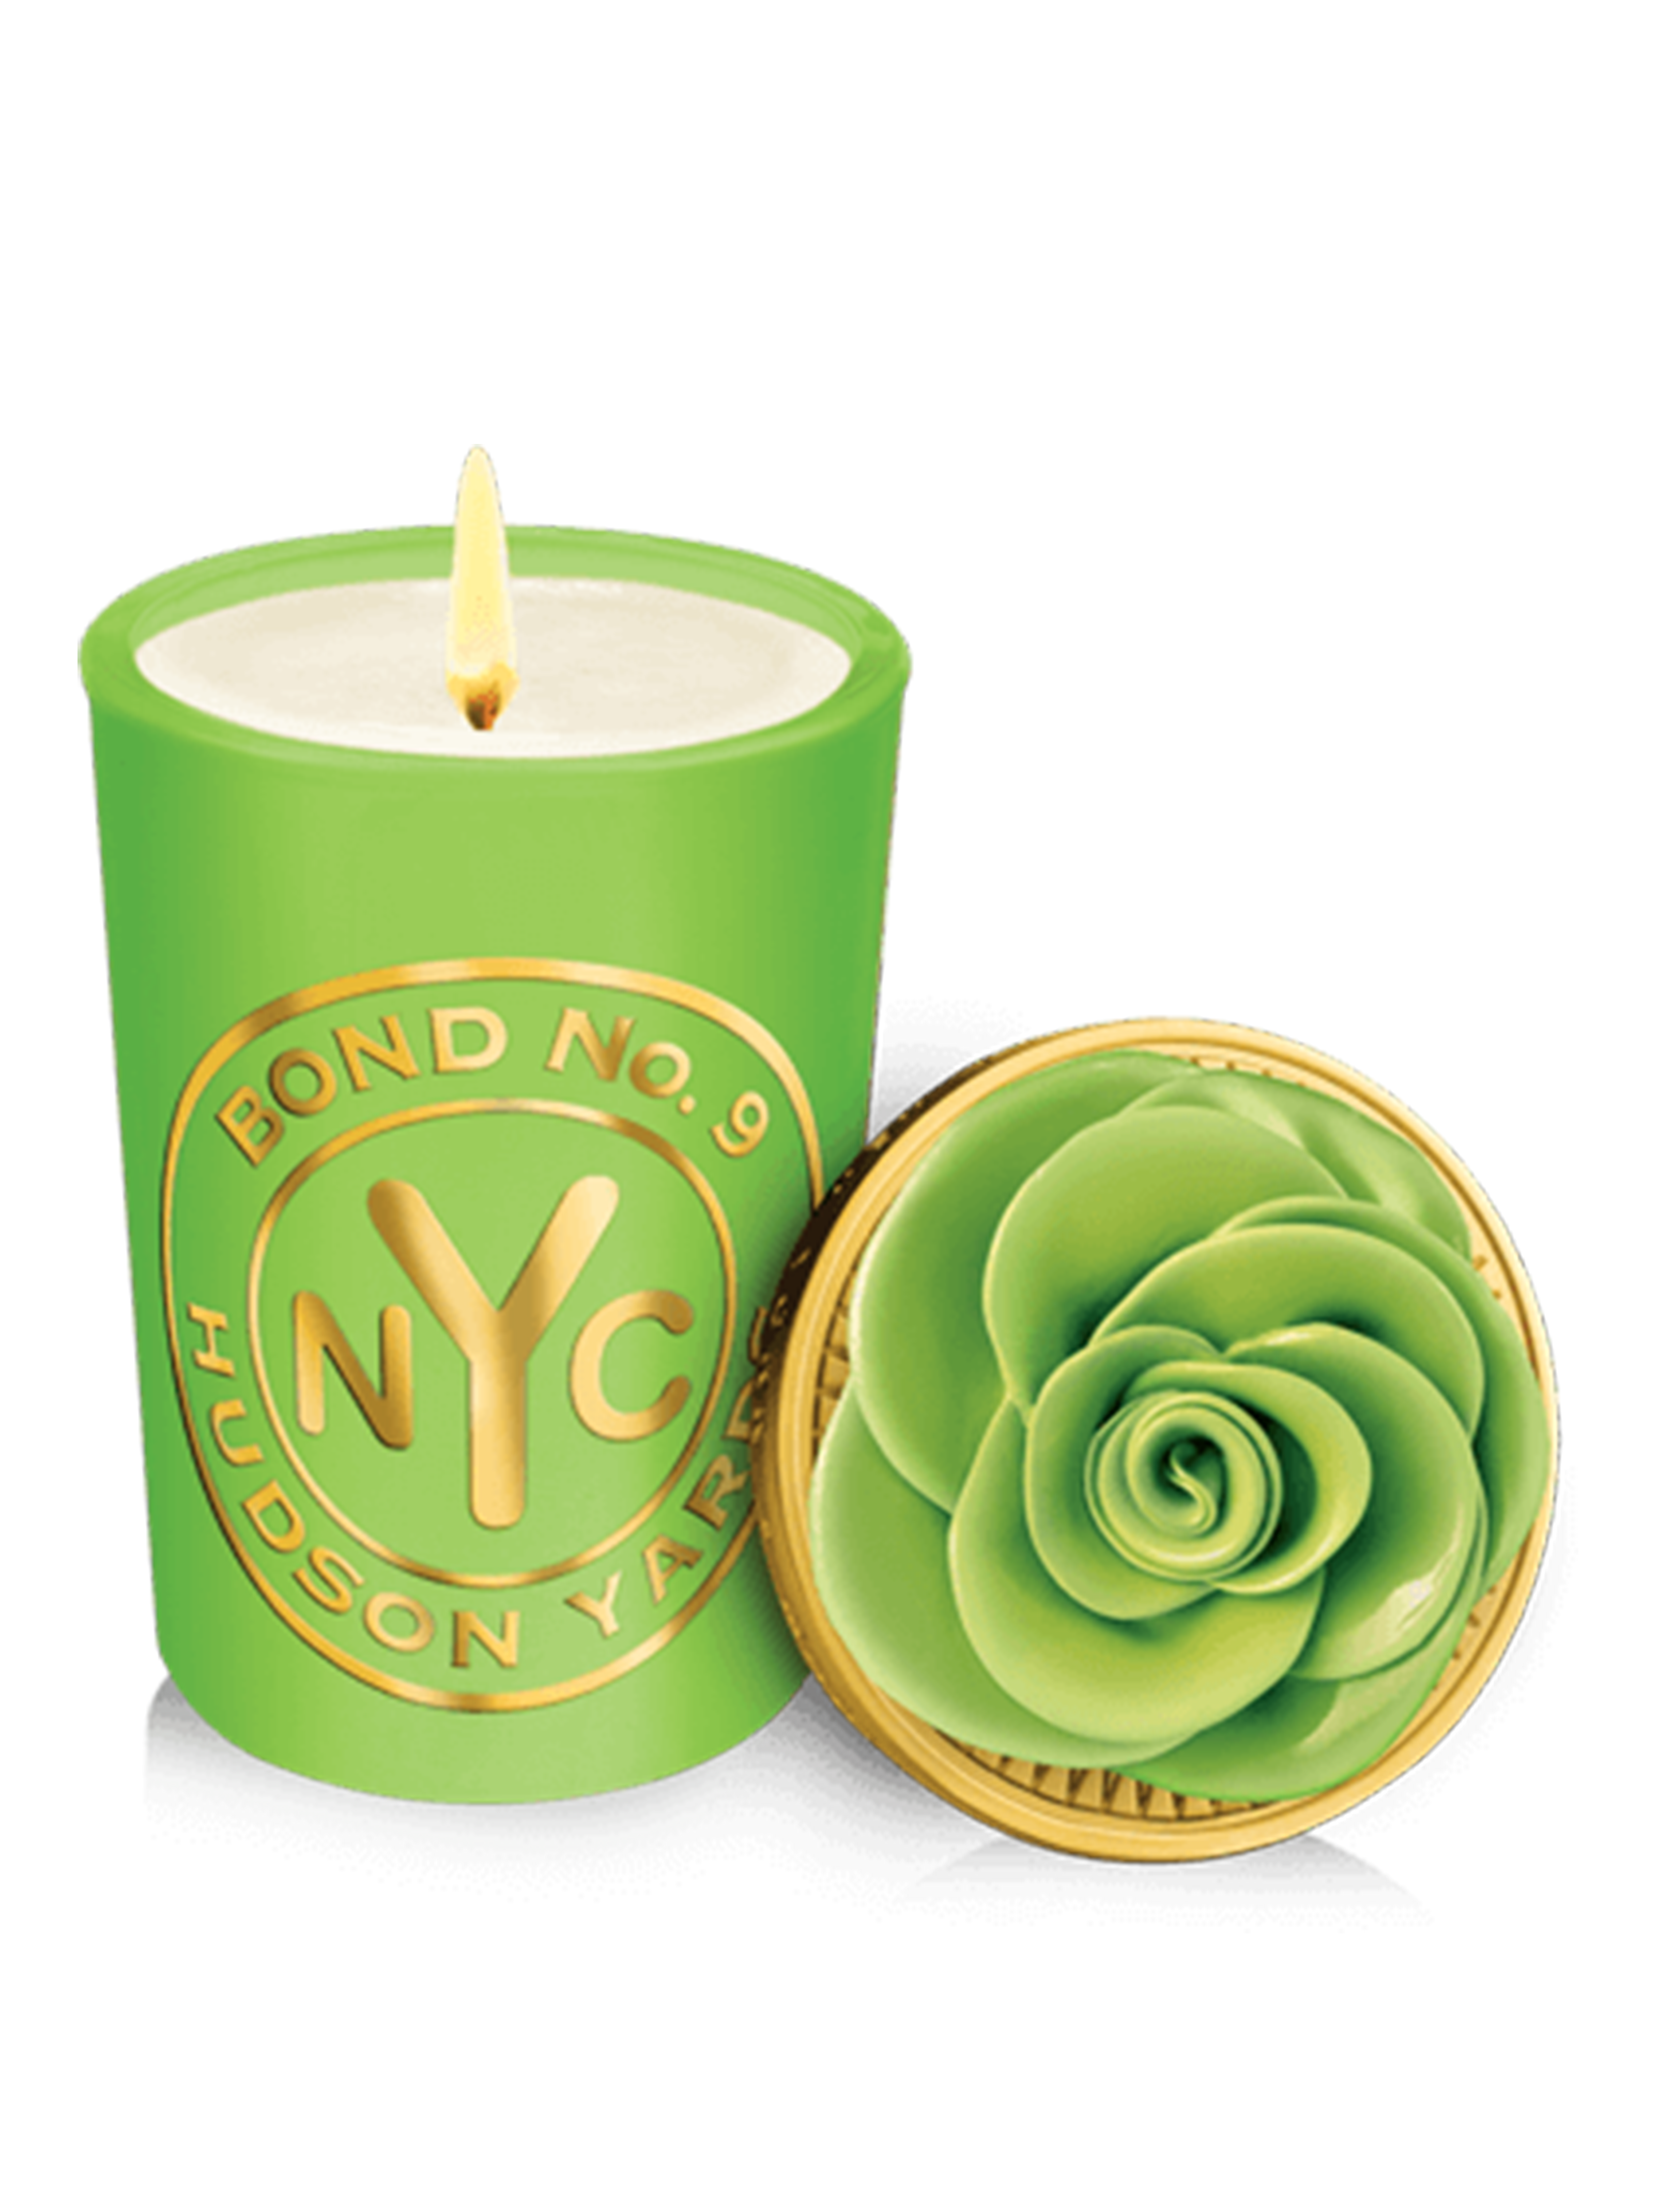 HUDSON YARDS SCENTED CANDLE